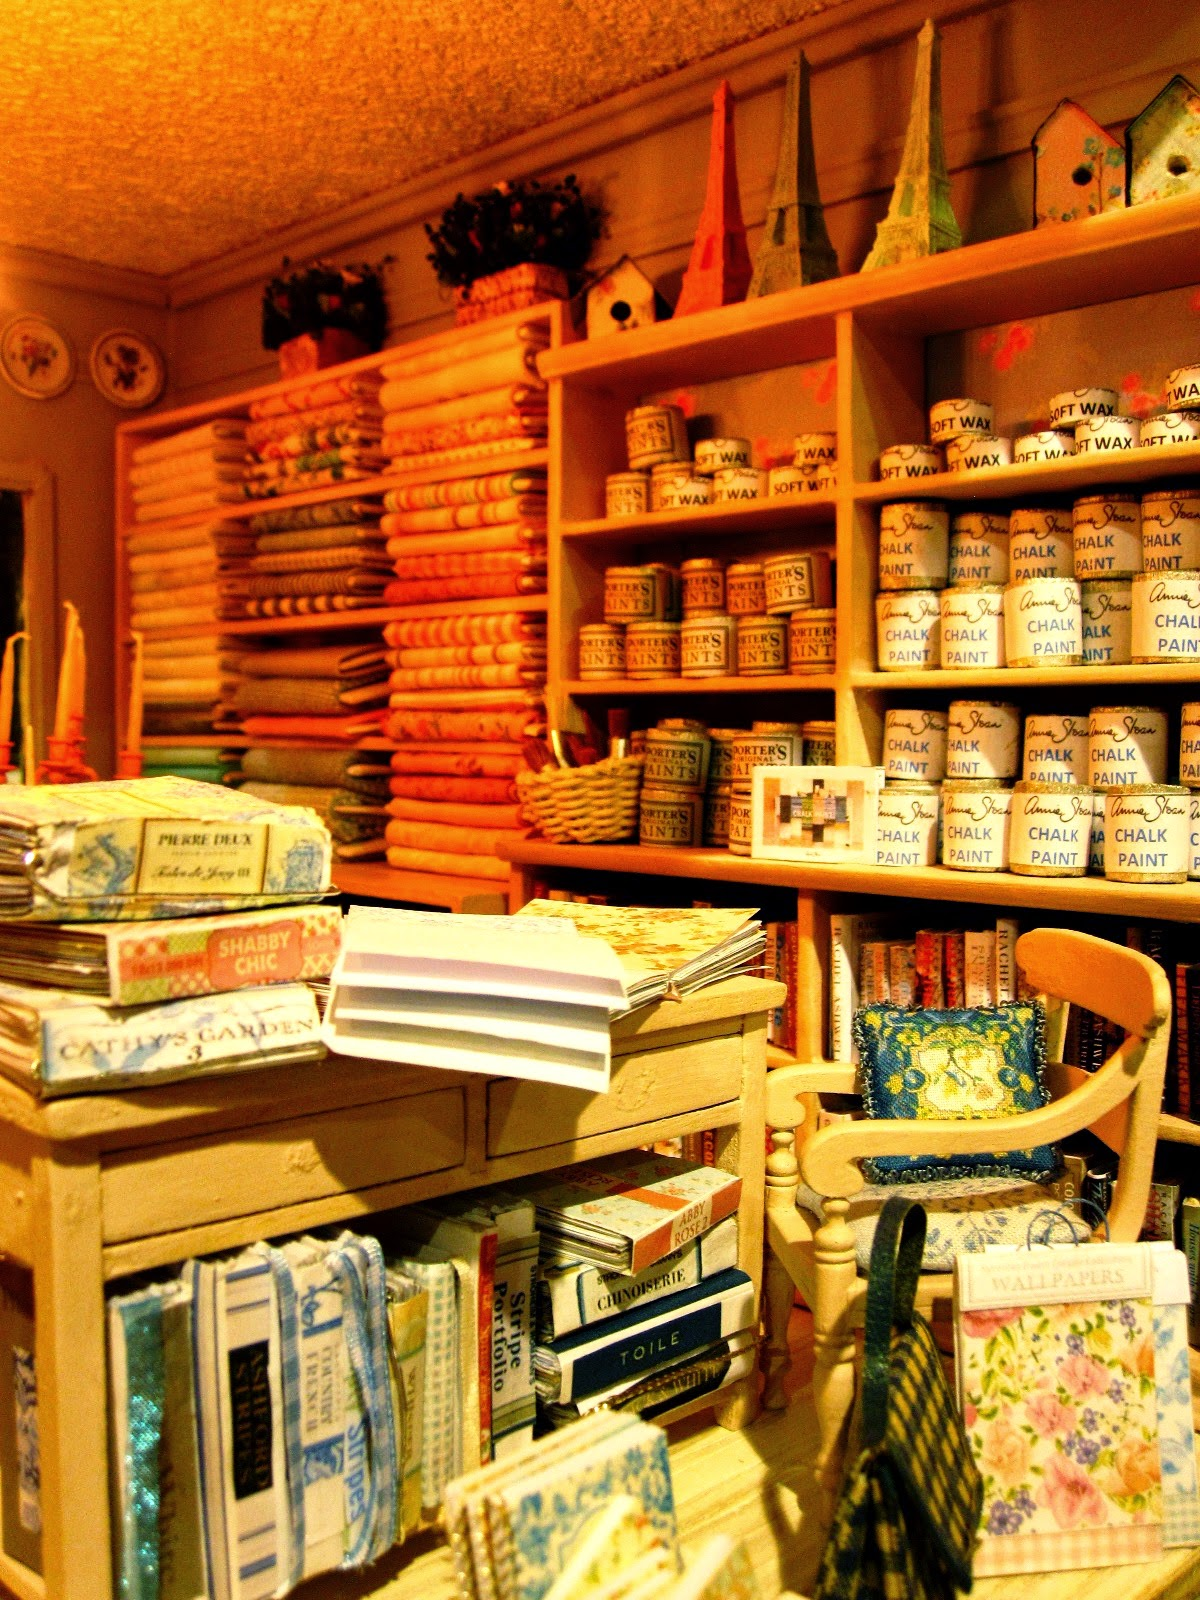 The right-hand side of a modern miniature shabby chic shop, showing wallpaper sample books, and shelves full of fabric and paint tins.